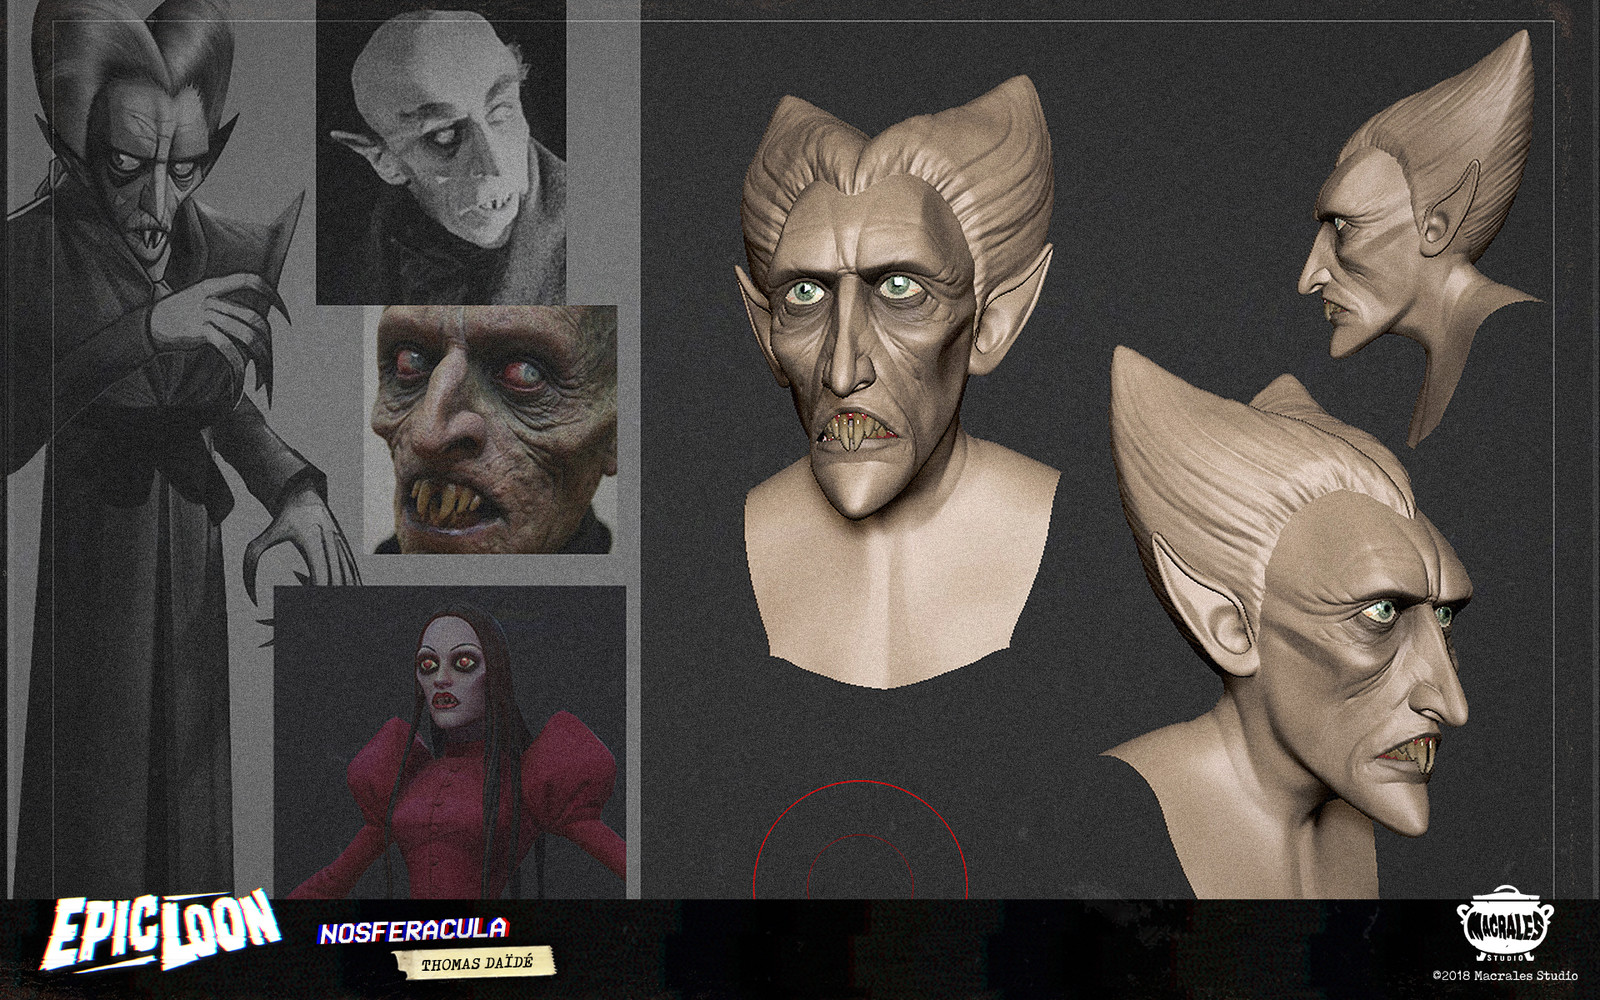 Zbrush Sculpt + Concept and references